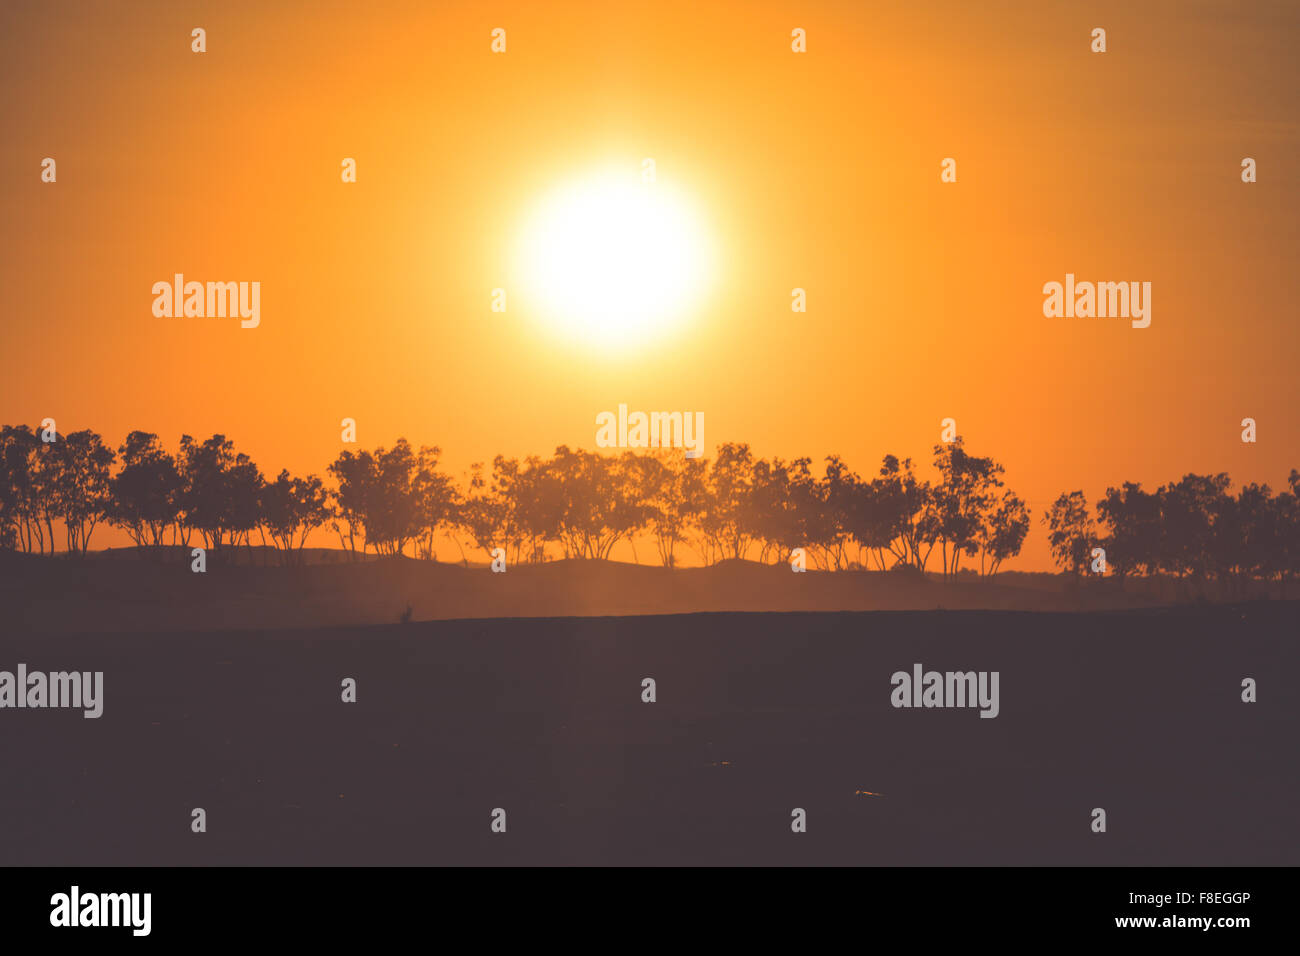 Sunset in the Sahara desert - Douz, Tunisia. - Stock Image